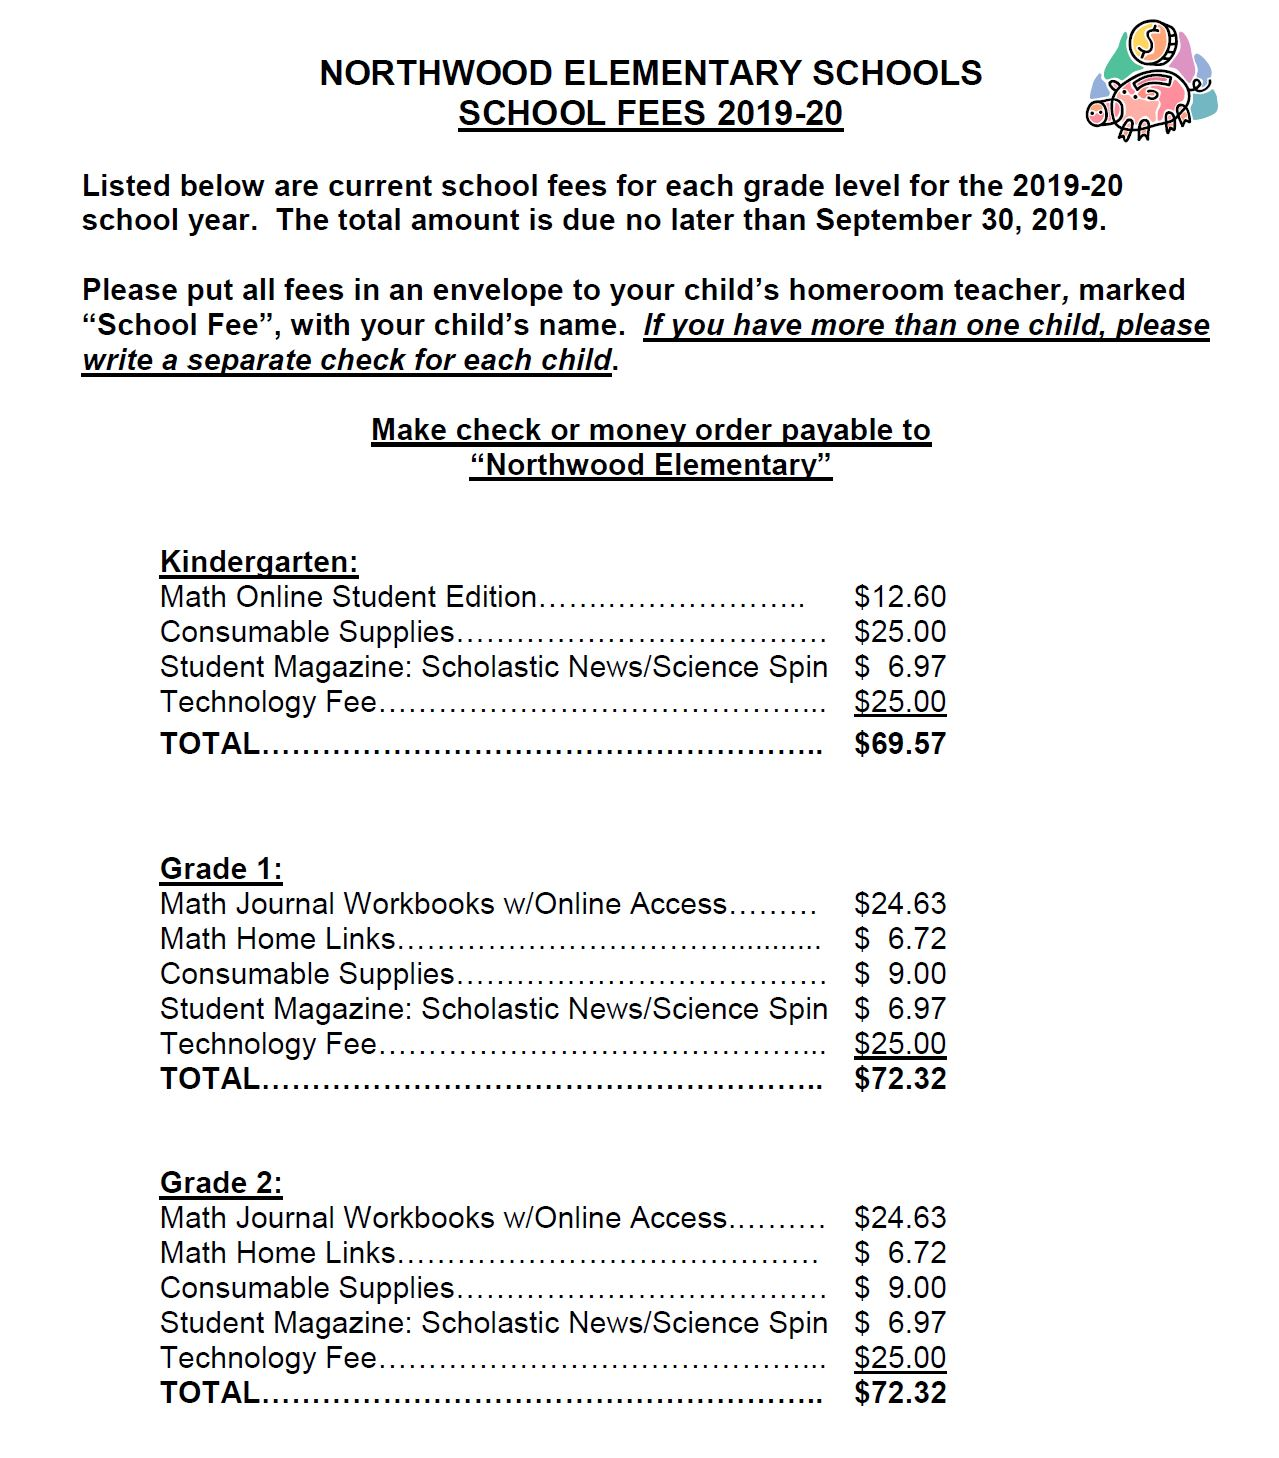 Photo of school fees for K-2